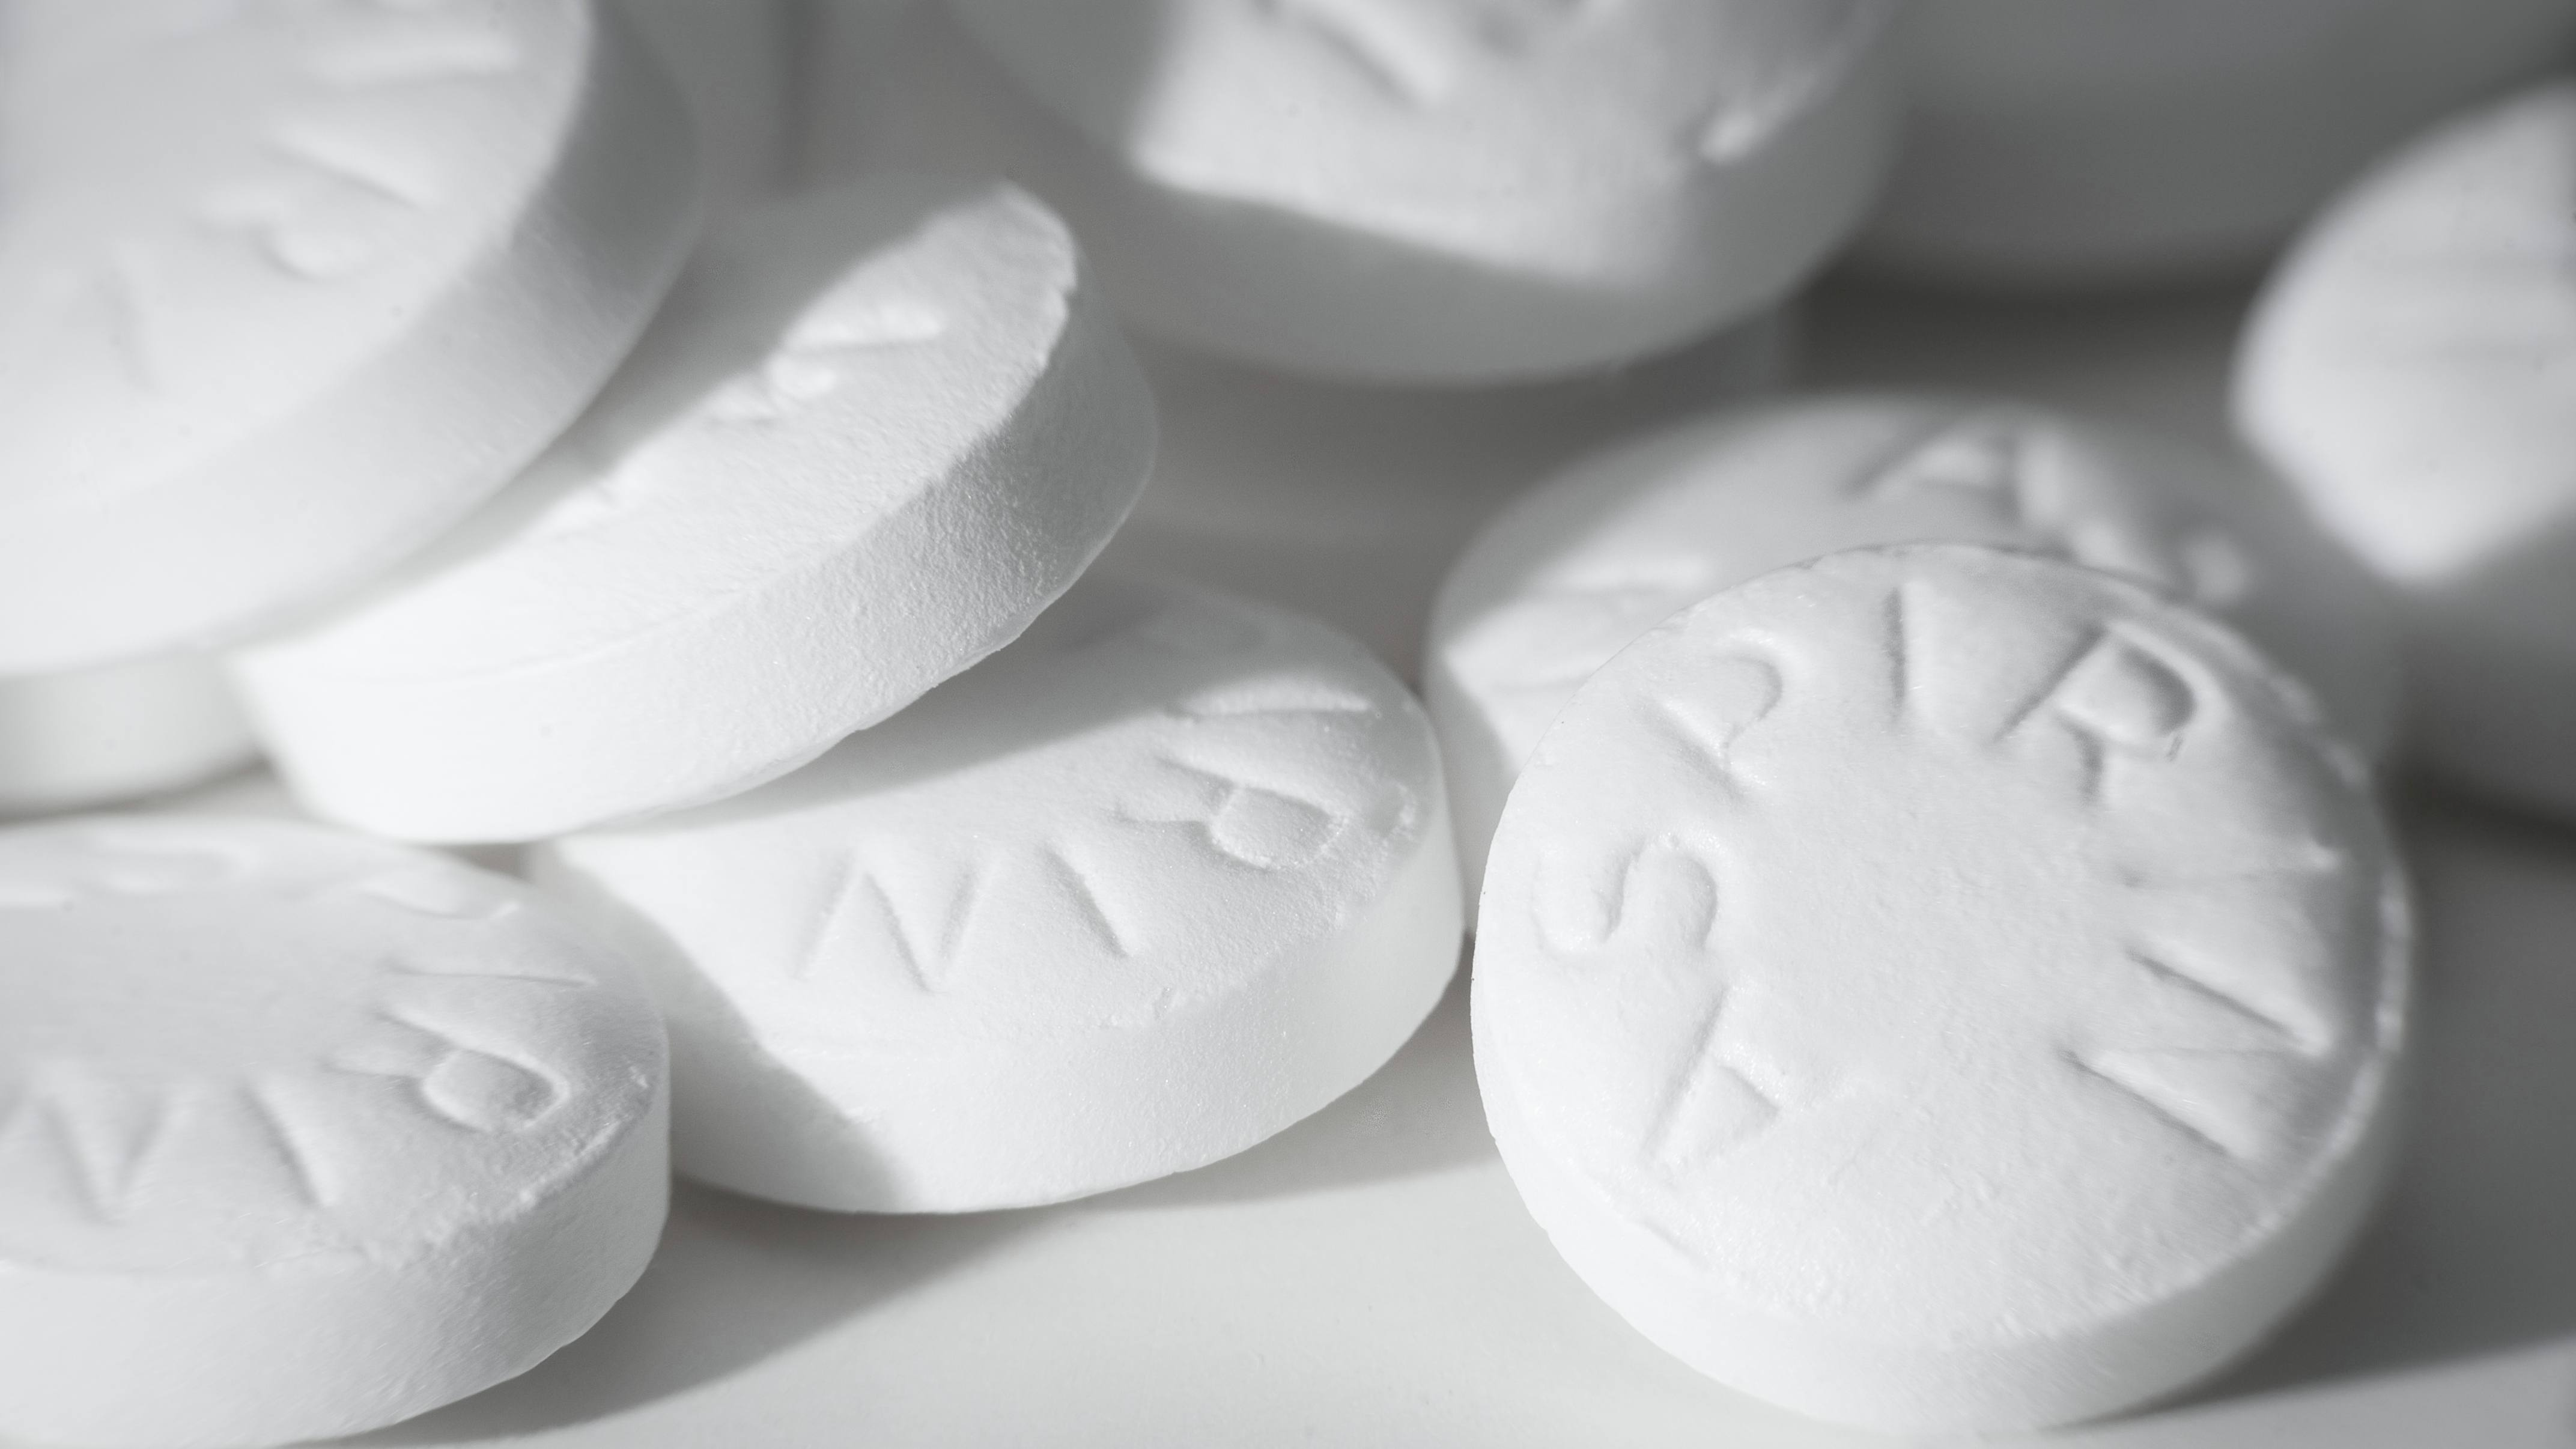 several aspirin tablets spilled on a white surface - pain medicine